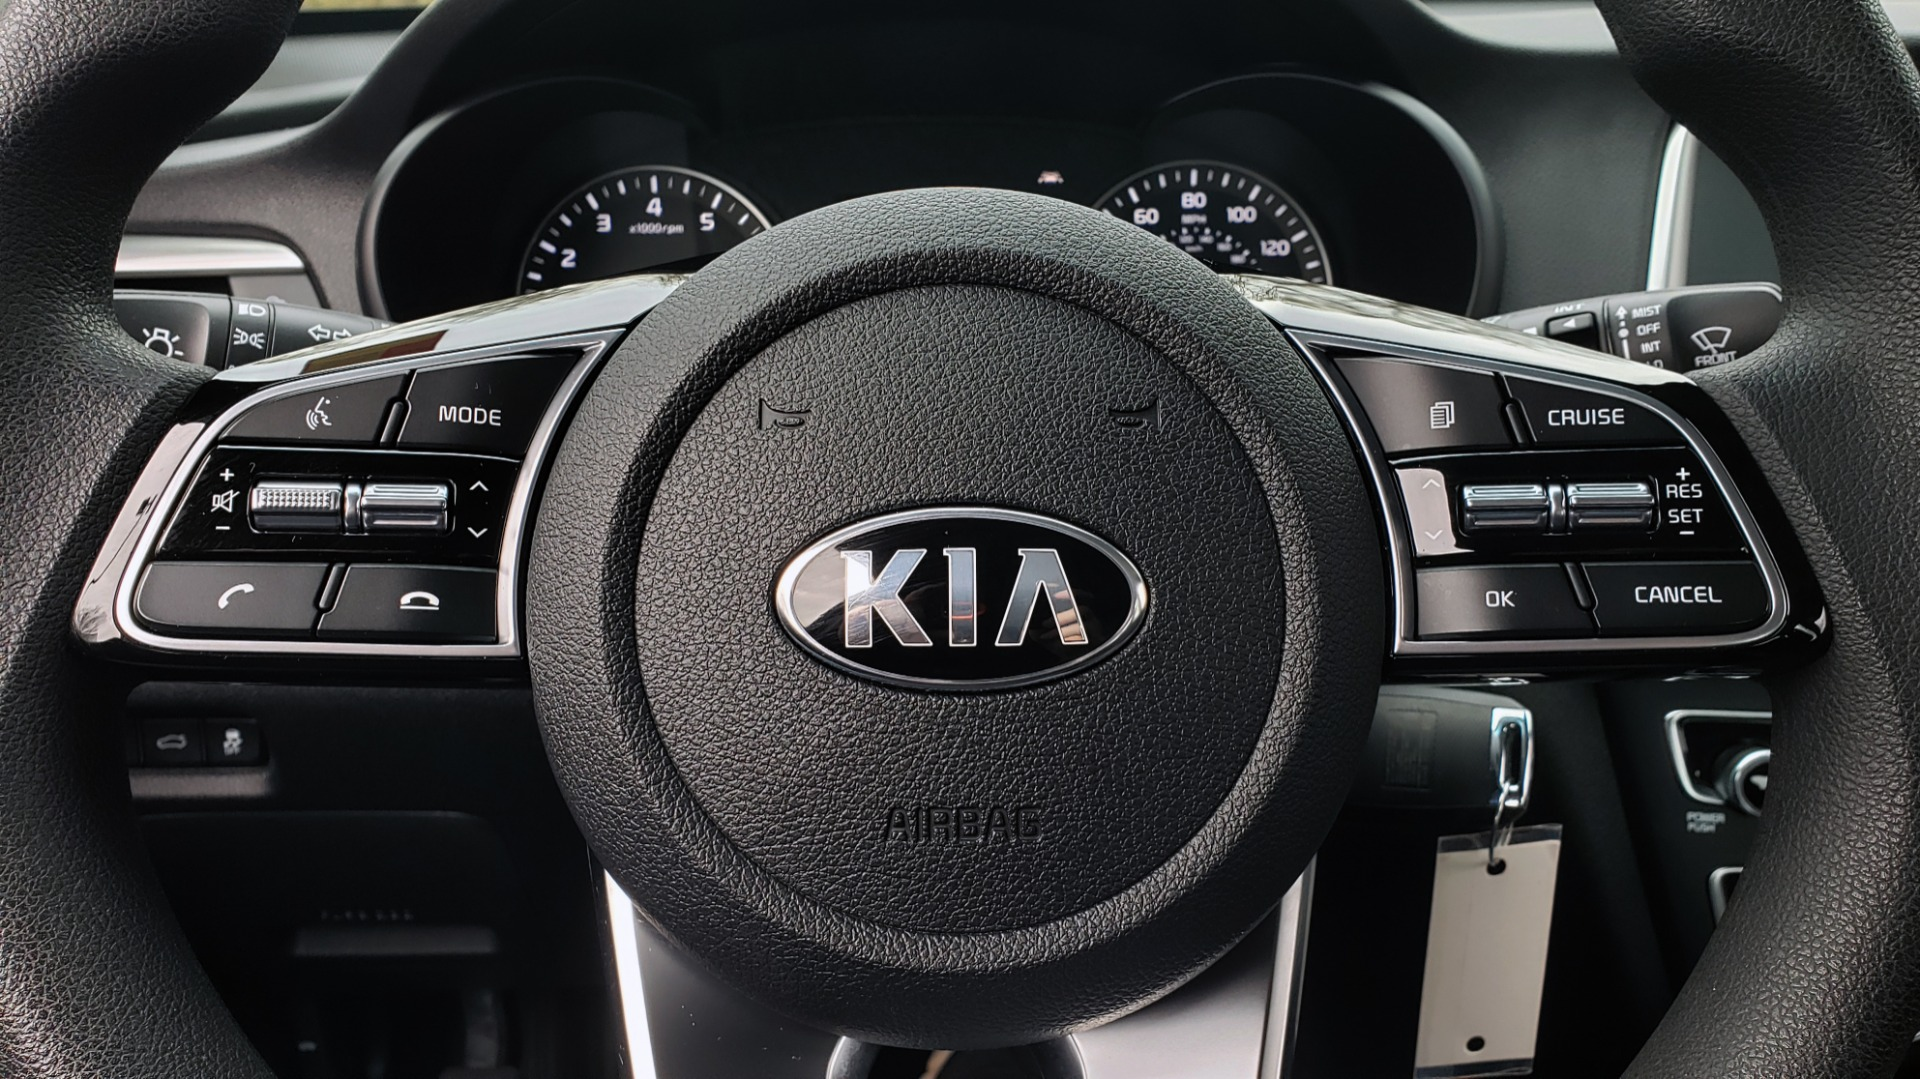 Used 2019 Kia OPTIMA LX AUTO / 2.4L 4-CYL / 6-SPD AUTO / REARVIEW / LOW MILES for sale $17,995 at Formula Imports in Charlotte NC 28227 35